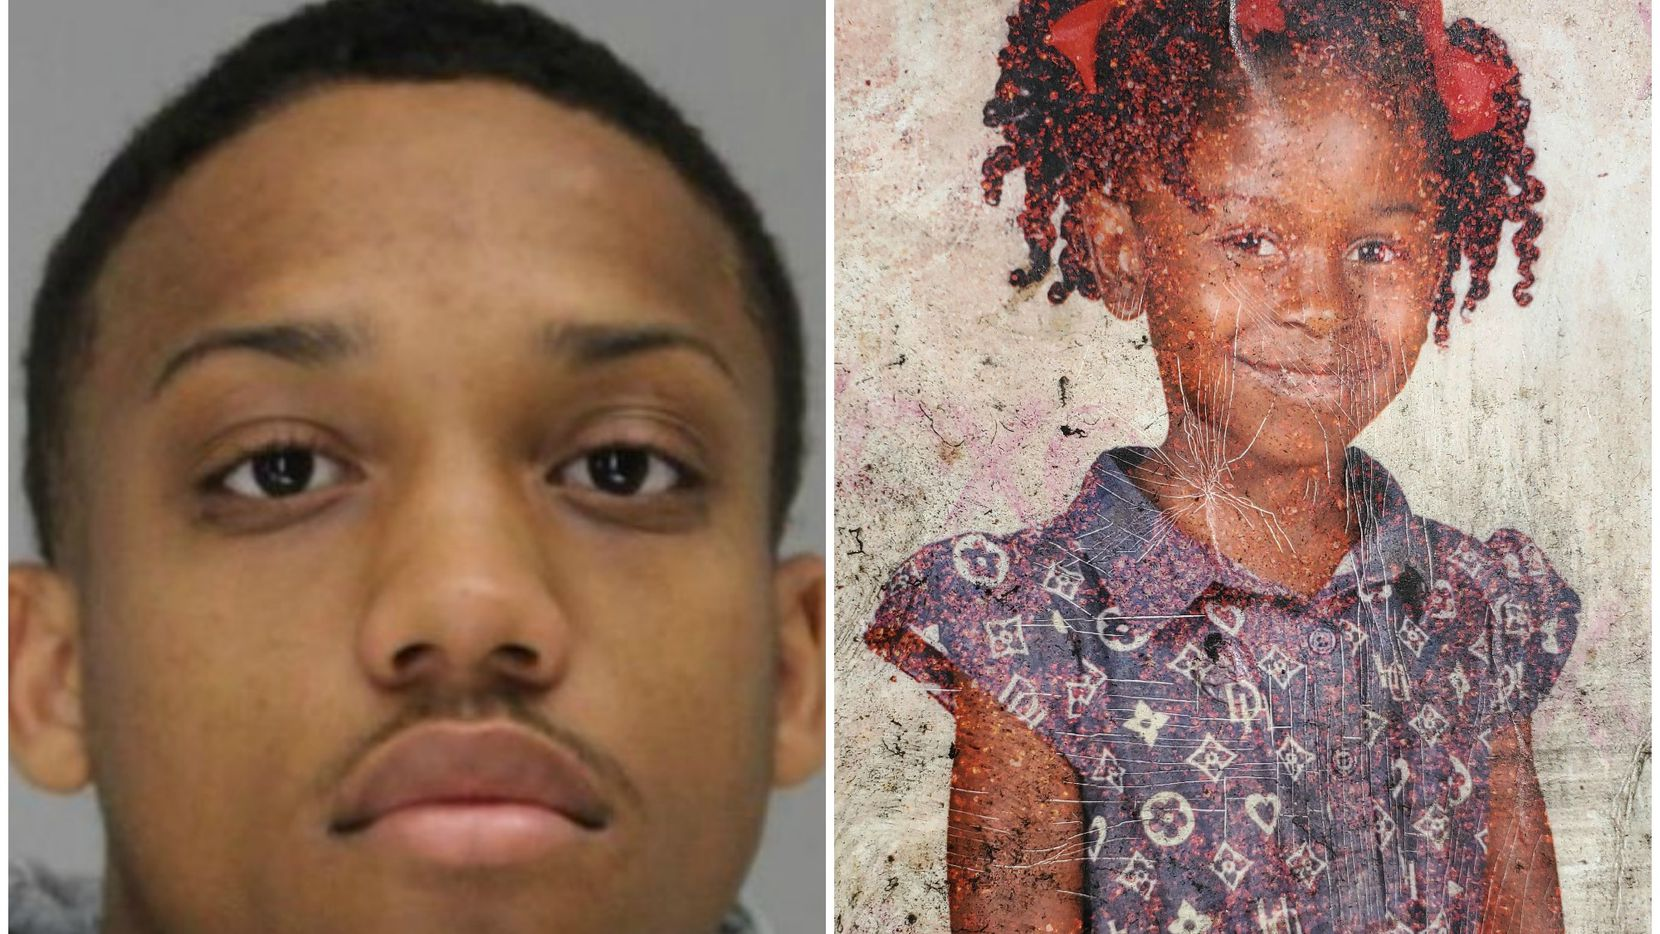 Rapper accused of killing Dallas girl while gunning for his